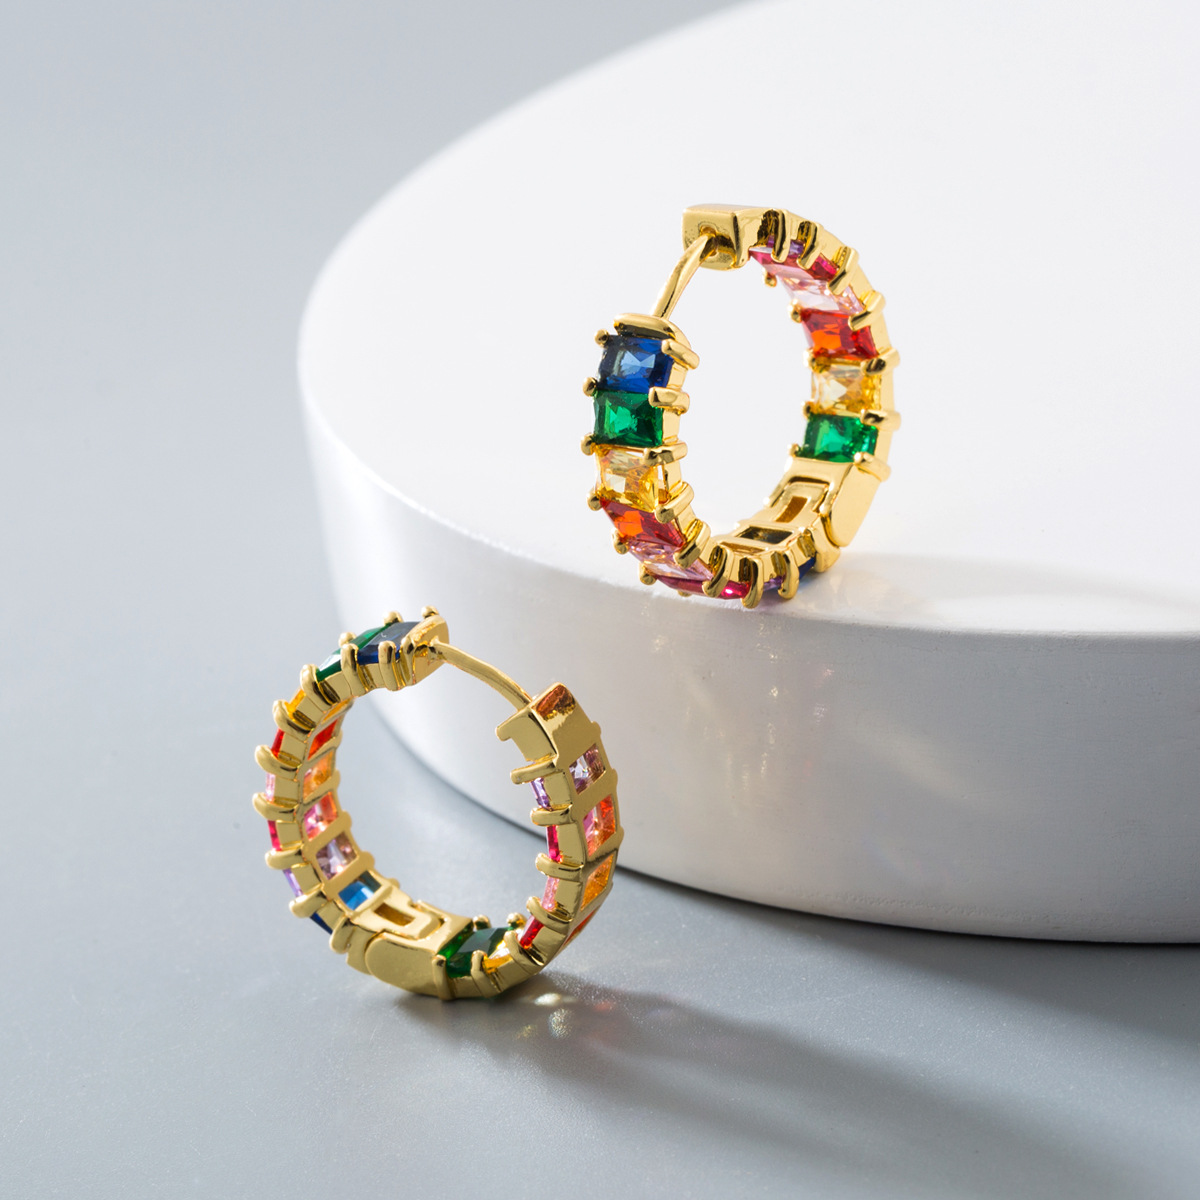 High Quality Geometric Square Cubic Zirconia CZ Stud Earrings Colorful Round CZ Crystal Hoop Earrings For Party